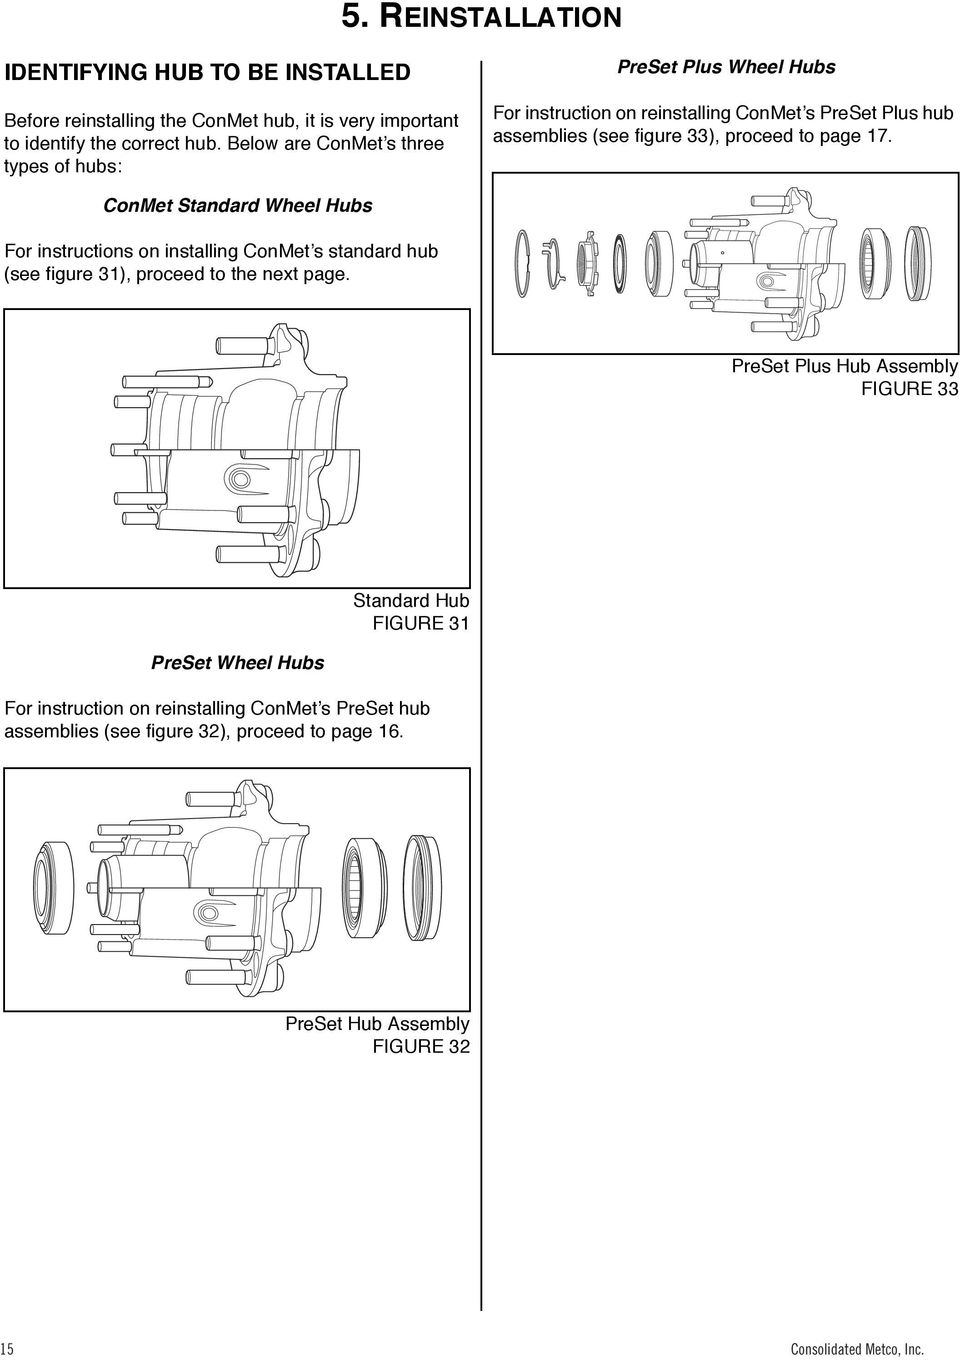 Service Manual For Conmet Hub Rotor Assemblies Heavy Duty Medium Assembly Diagram 36 Standard Wheel Hubs Instructions On Installing Conmets See Figure 31